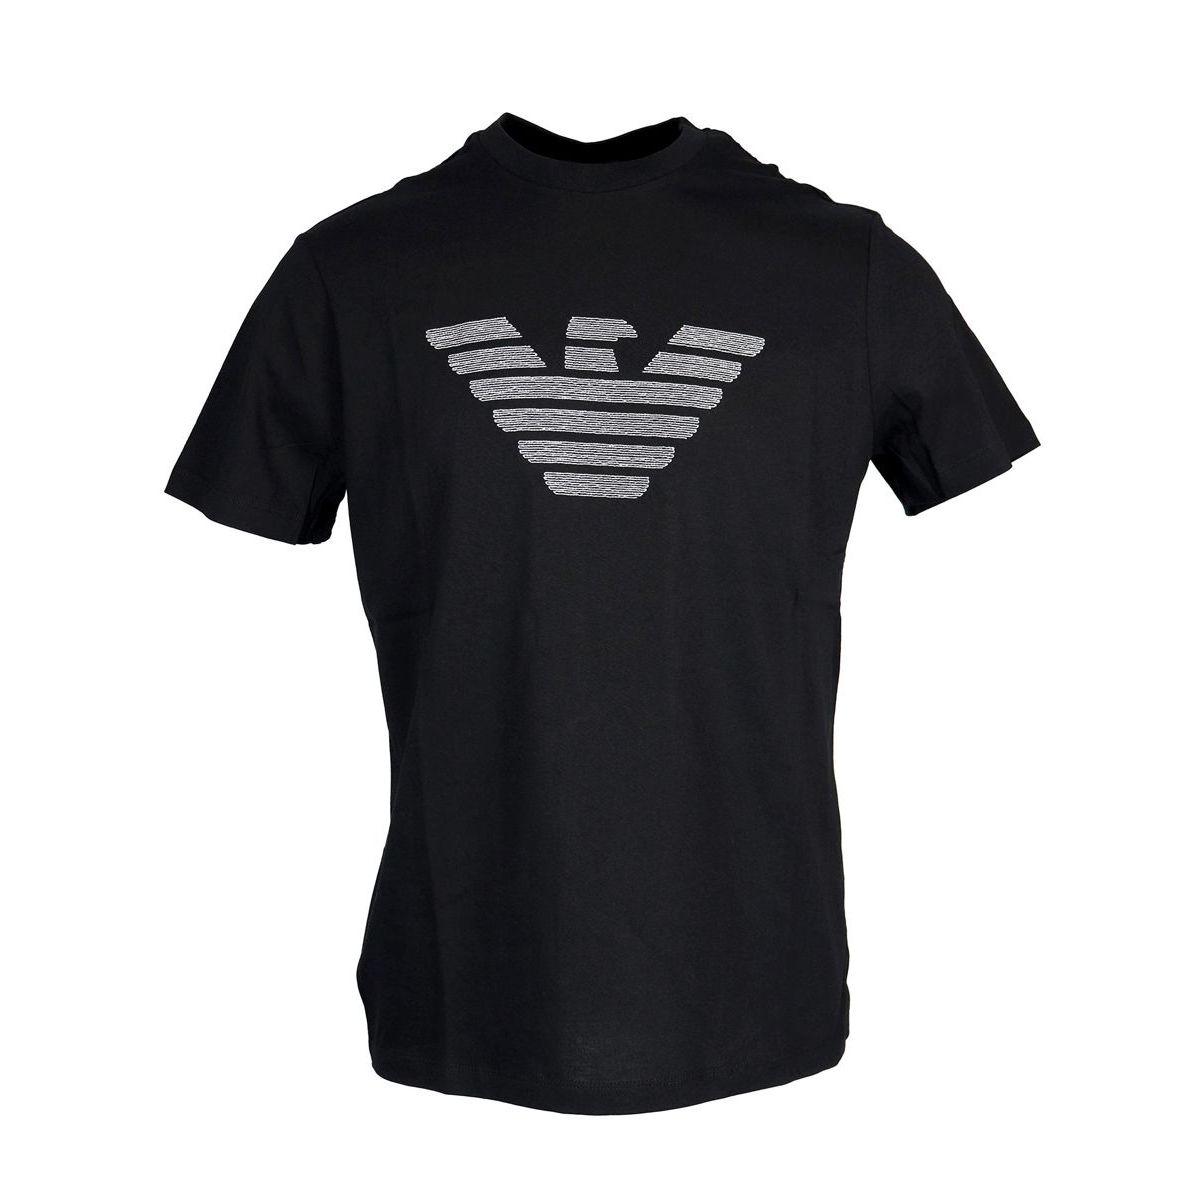 Cotton T-shirt with maxi logo Black Emporio Armani